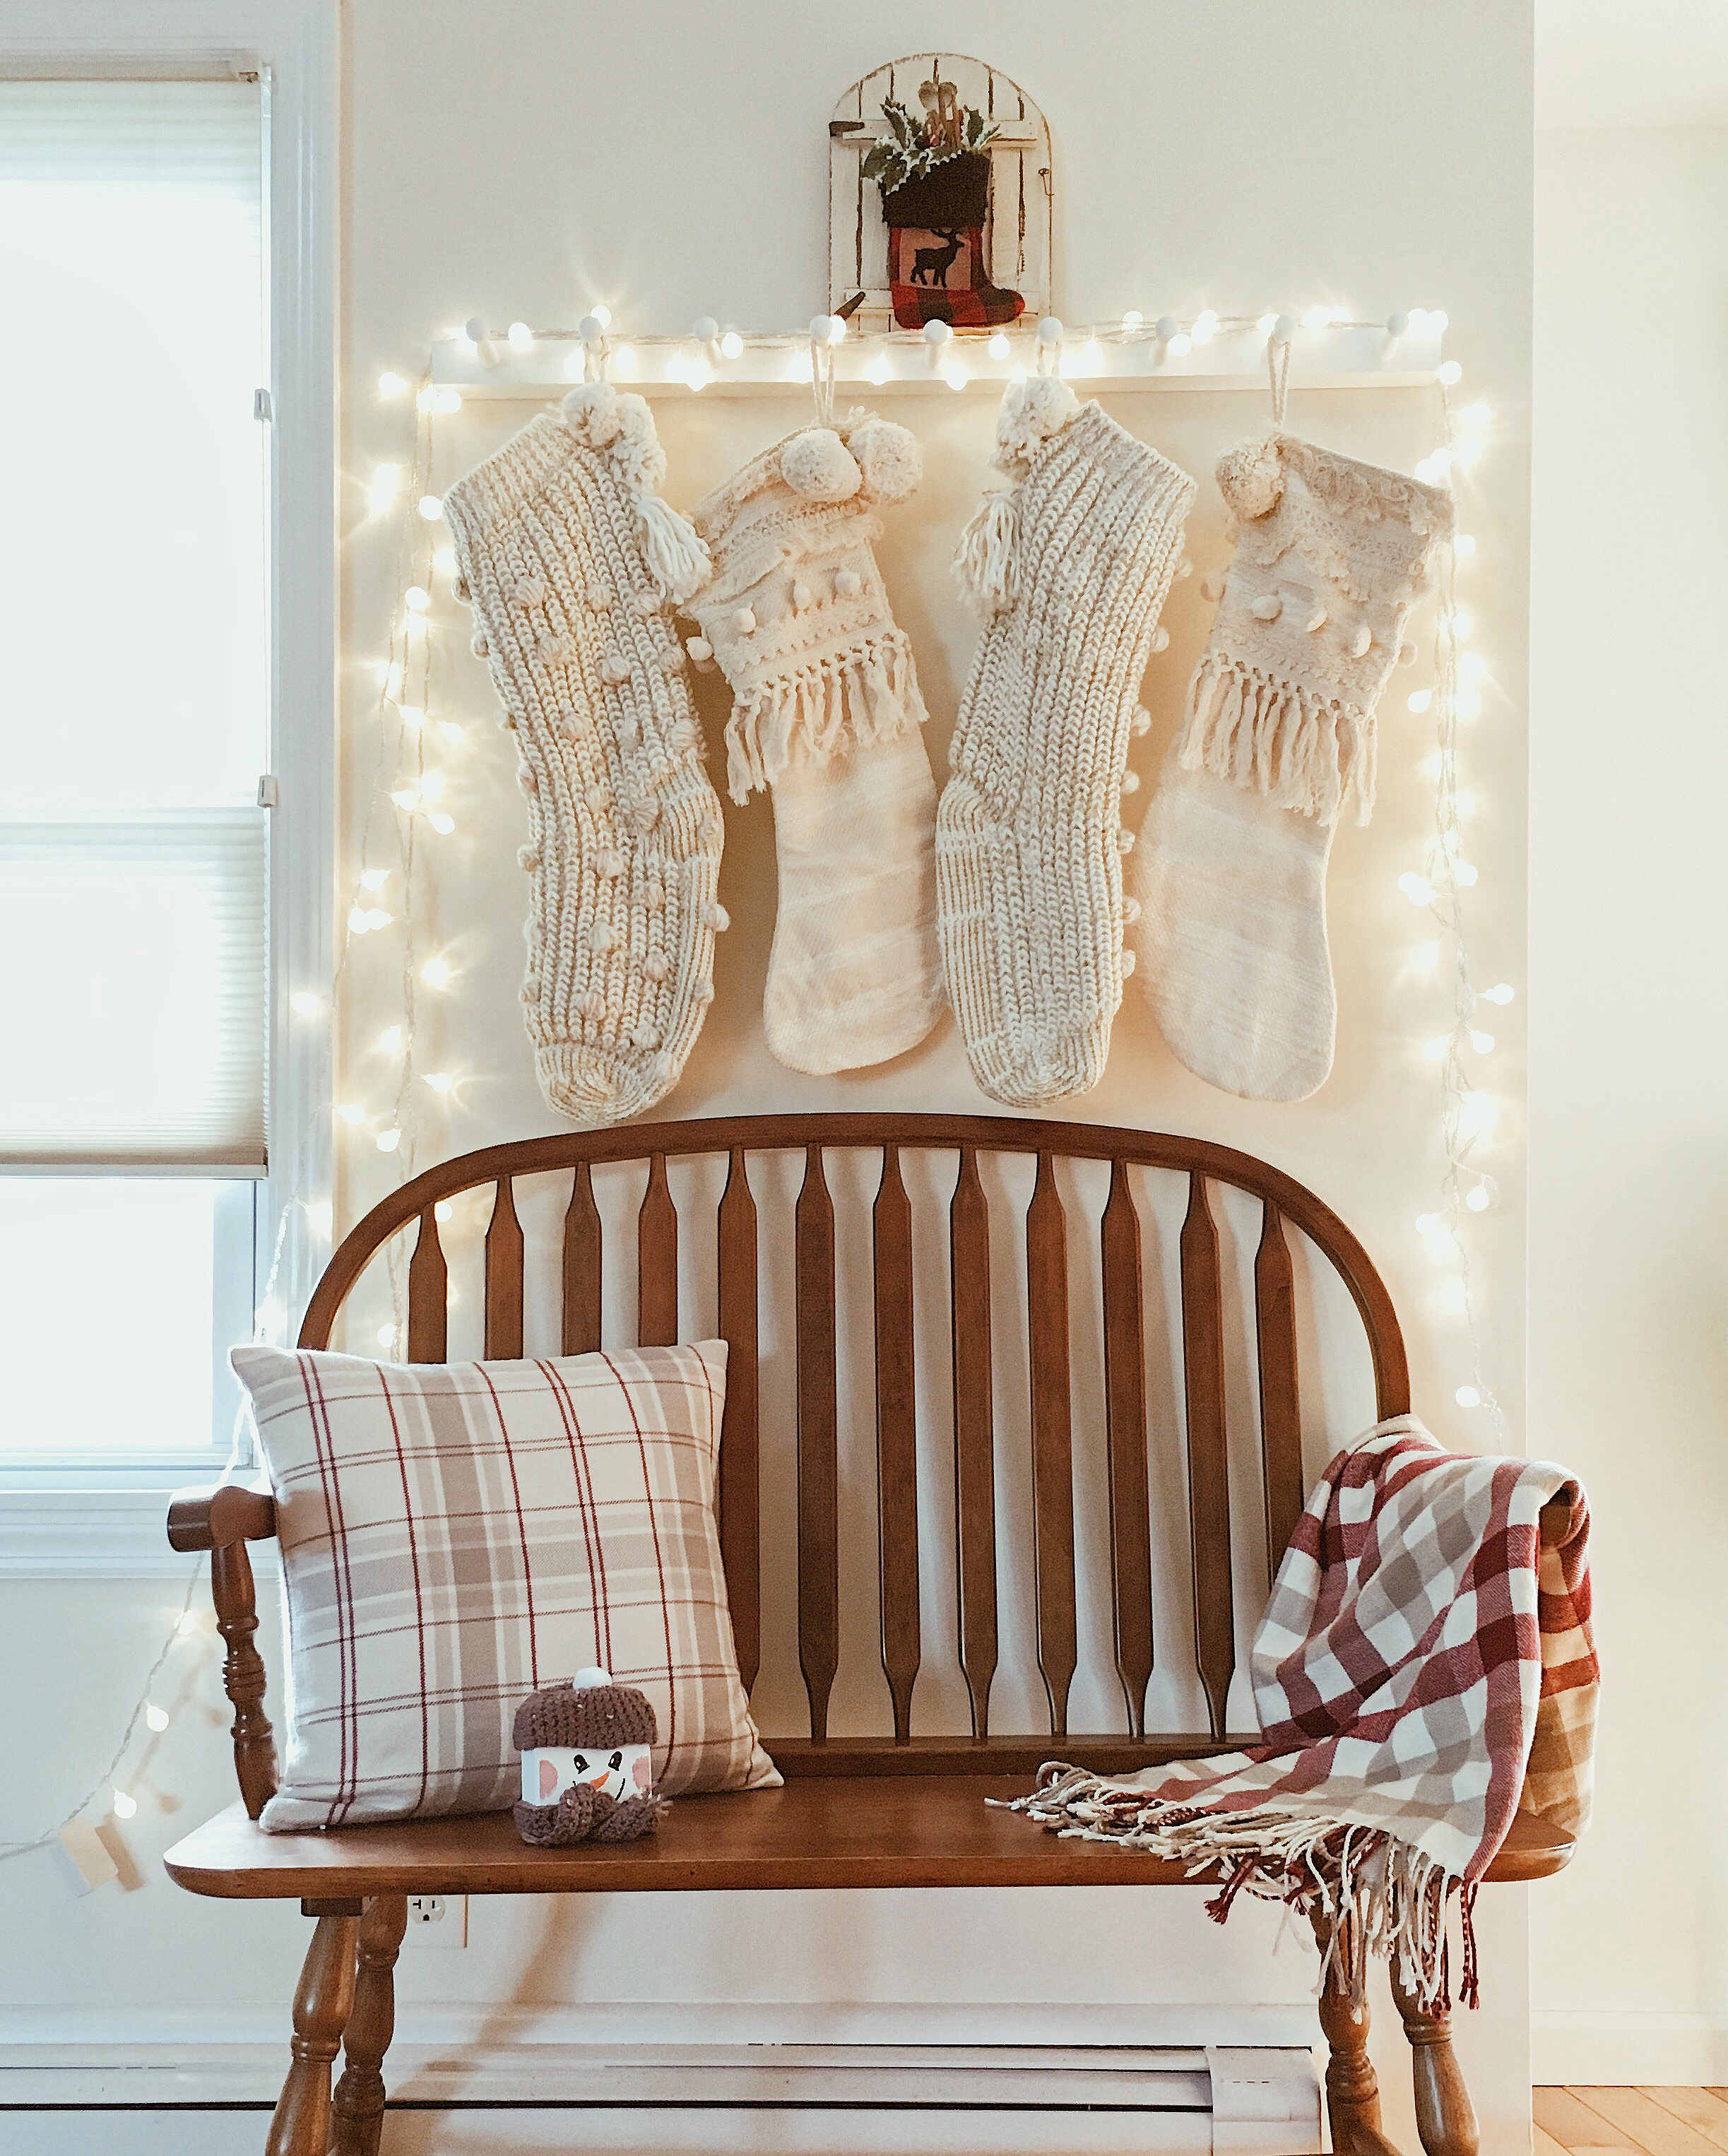 Merry & Bright // livelovesimple.com